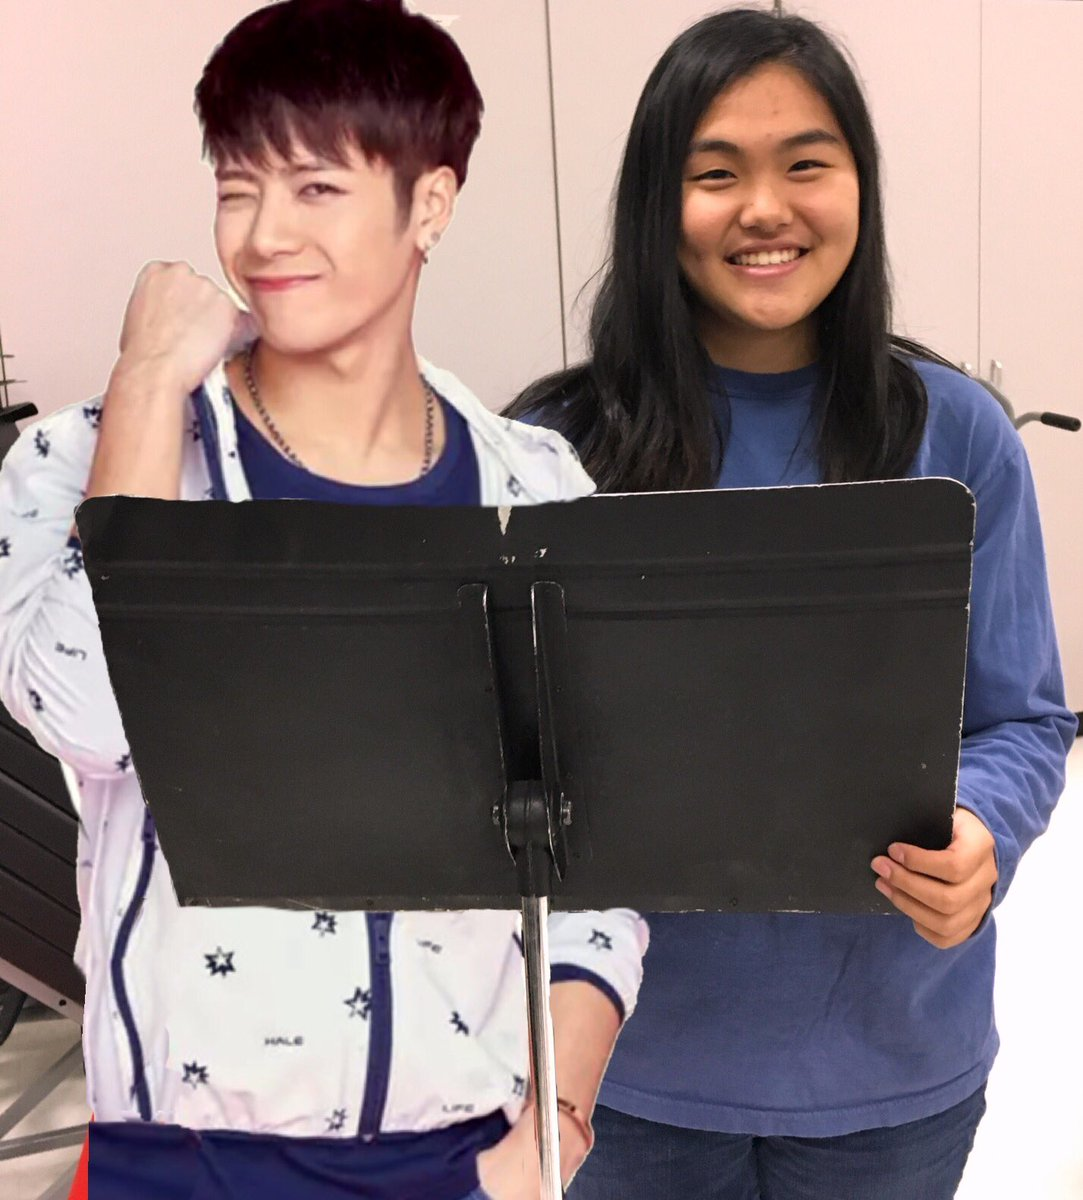 O9.18.17 Will you STAND by me at prom?  #jacksonwangprom #jacksonwang #promposal #got7jackson #got7 #igot7selcaday #igot7 #puns #prom <br>http://pic.twitter.com/mcsRI4G4E3